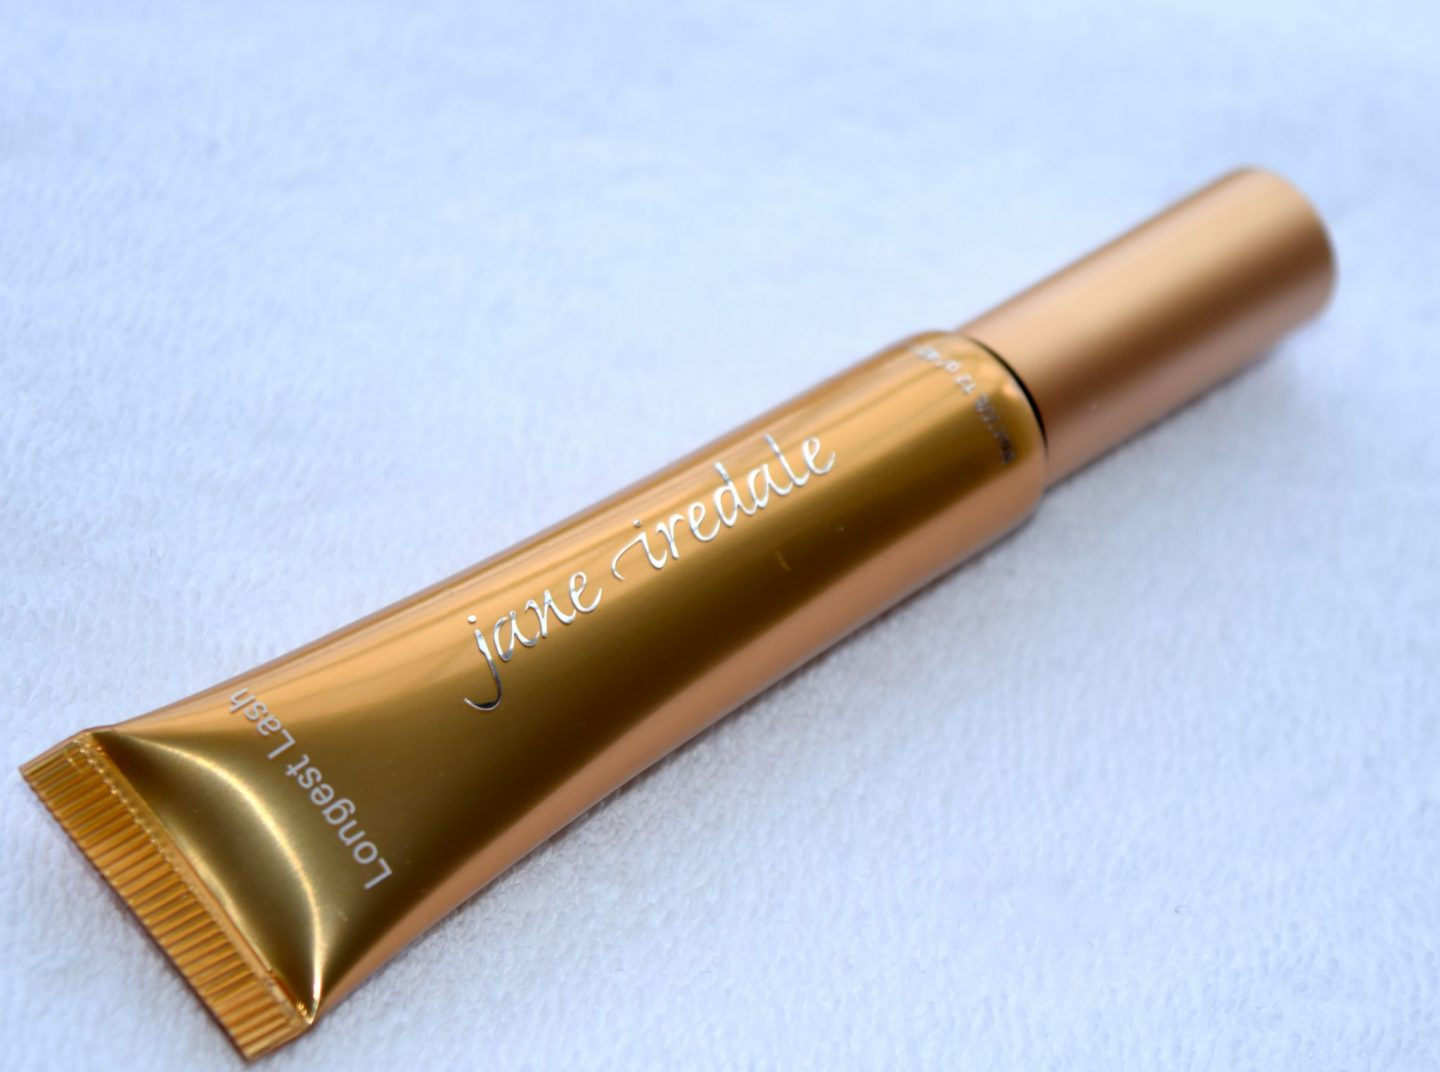 Jane Iredale Longest Lash Mascara 1